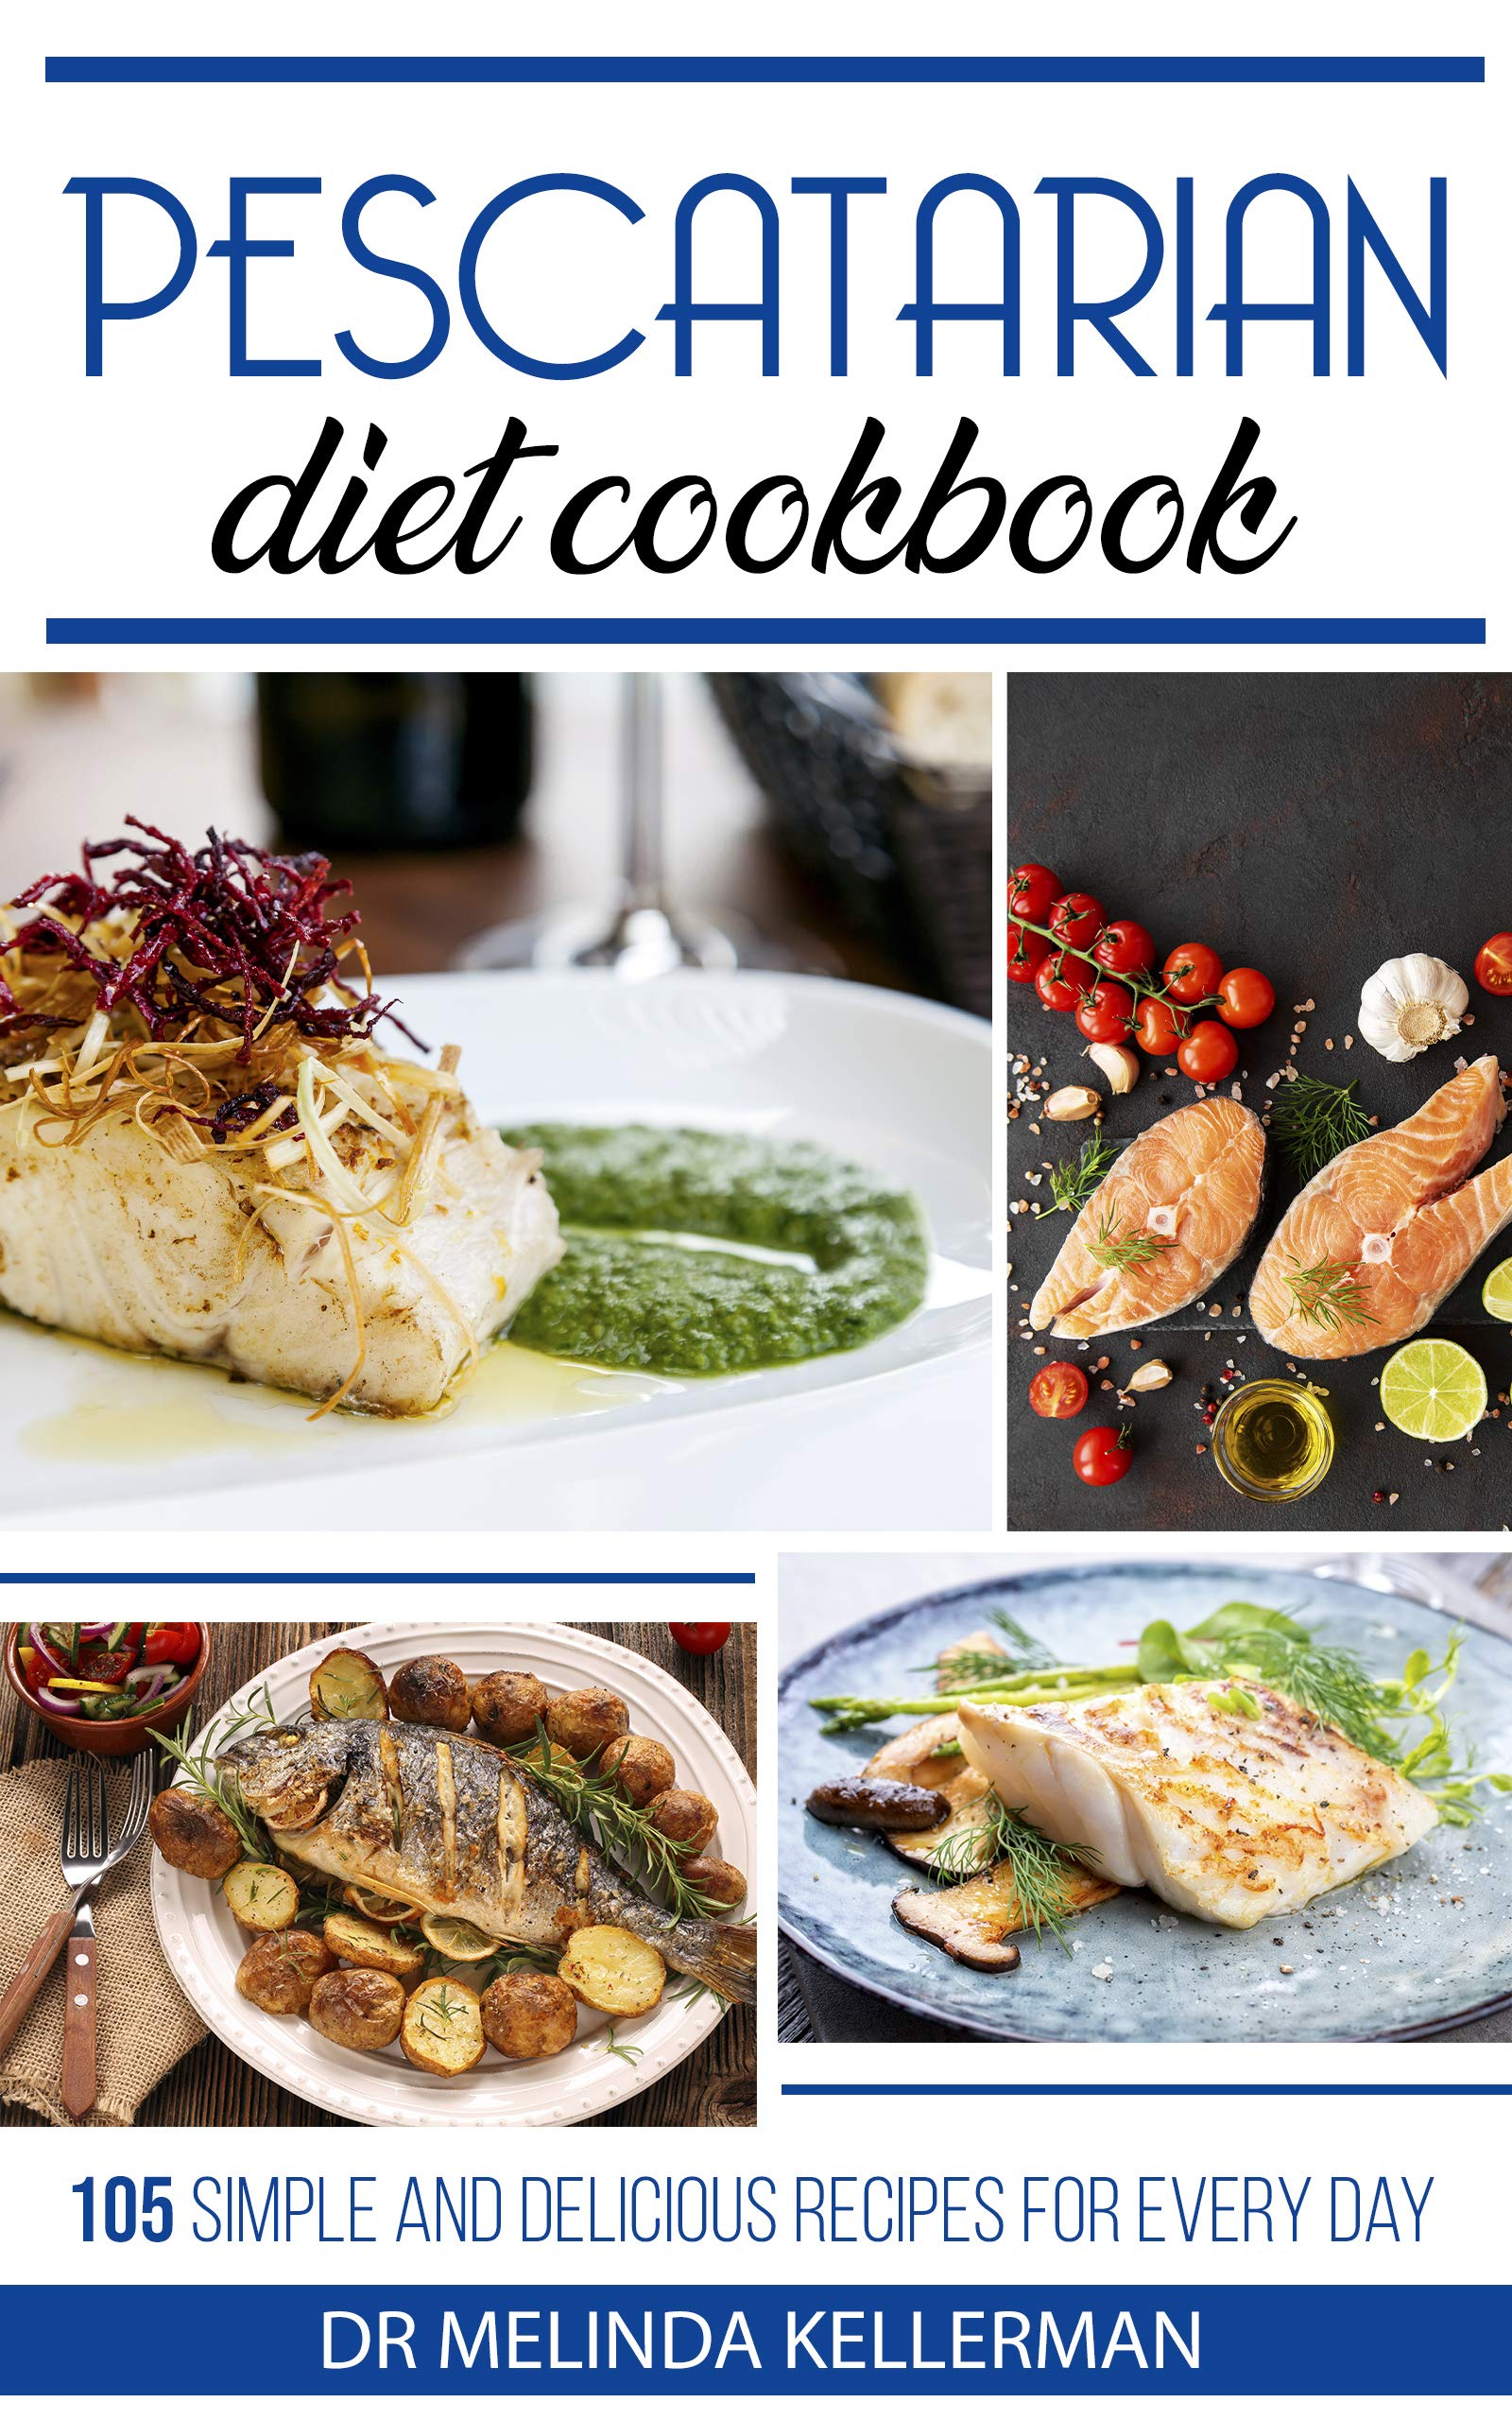 Pescatarian Diet Cookbook: 105 Simple and Delicious Recipes for Every Day